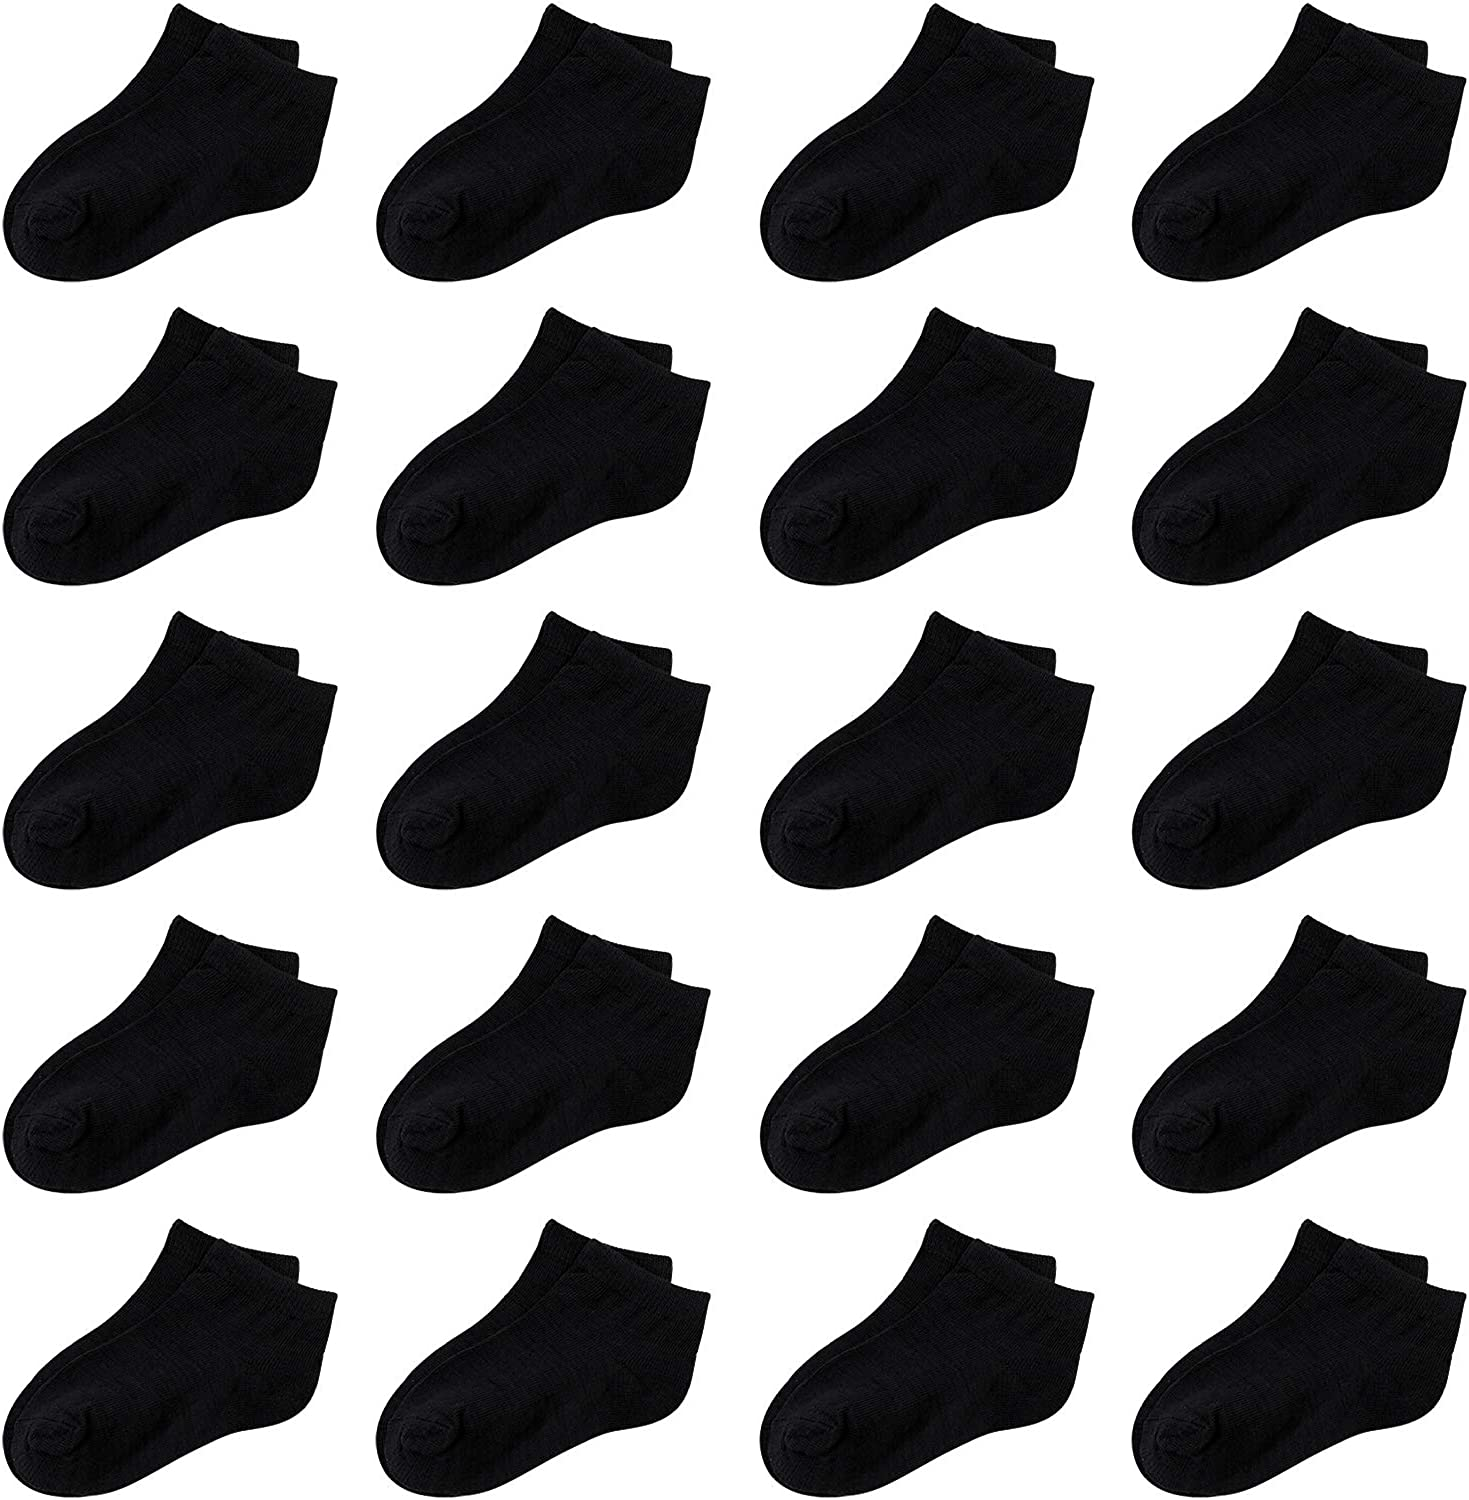 Cooraby 20 Pairs Toddler Kids Half Cushion Low Cut Soft Ankle Socks Breathable Athletic Socks